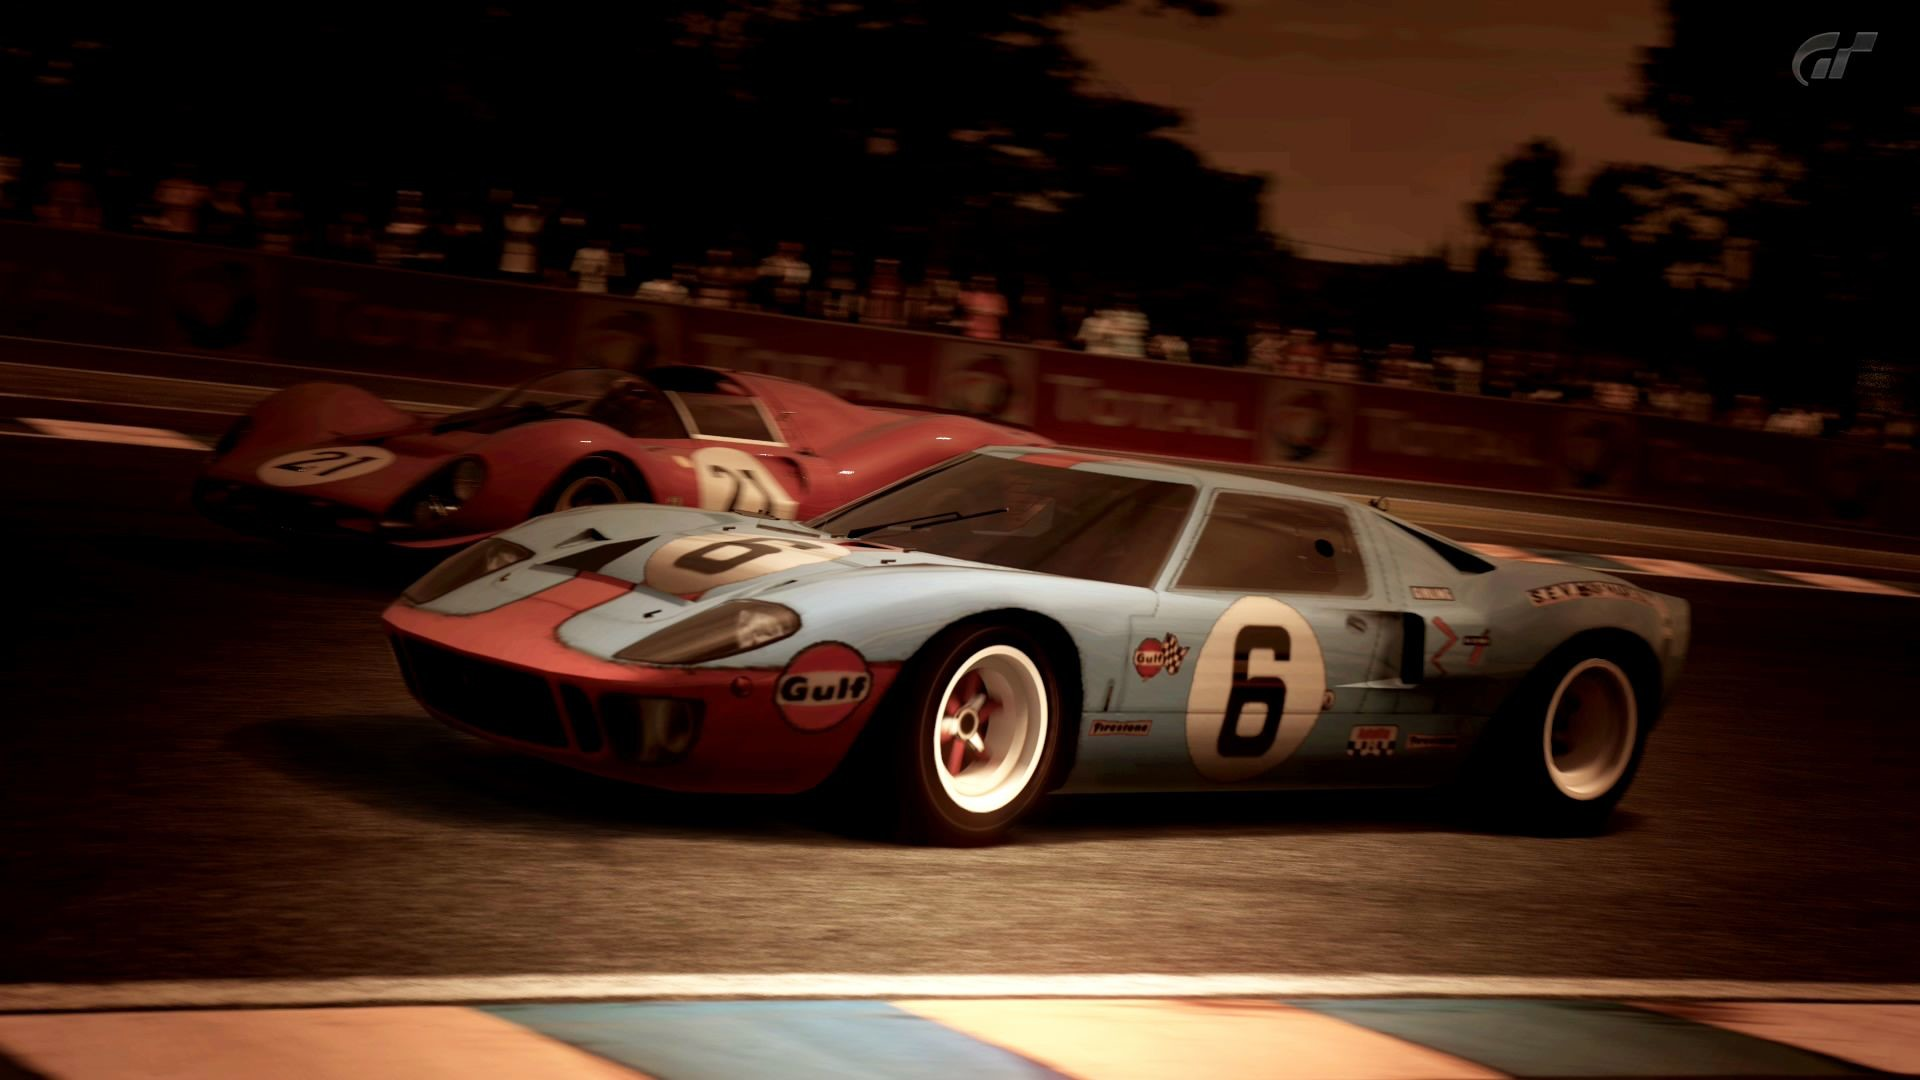 Res: 1920x1080, Ford Gt40 Wallpaper Gulf